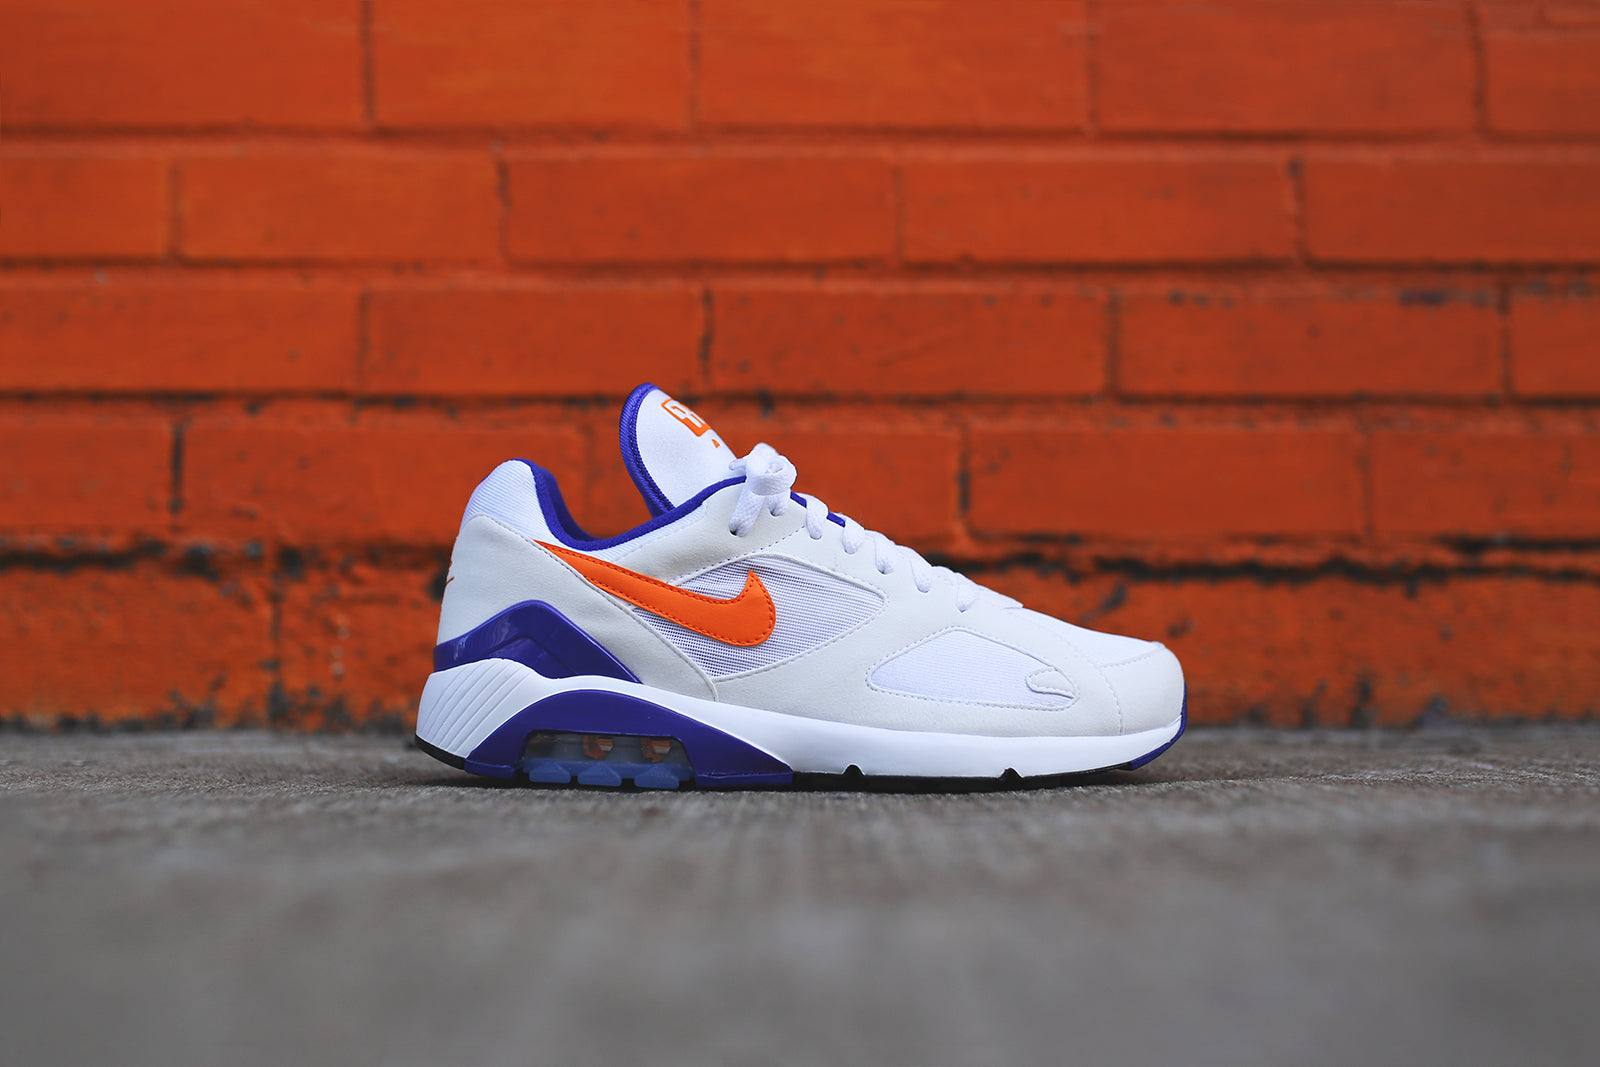 meet b009b ae236 new zealand nike air max 180 white orange purple c0b92 dd1db